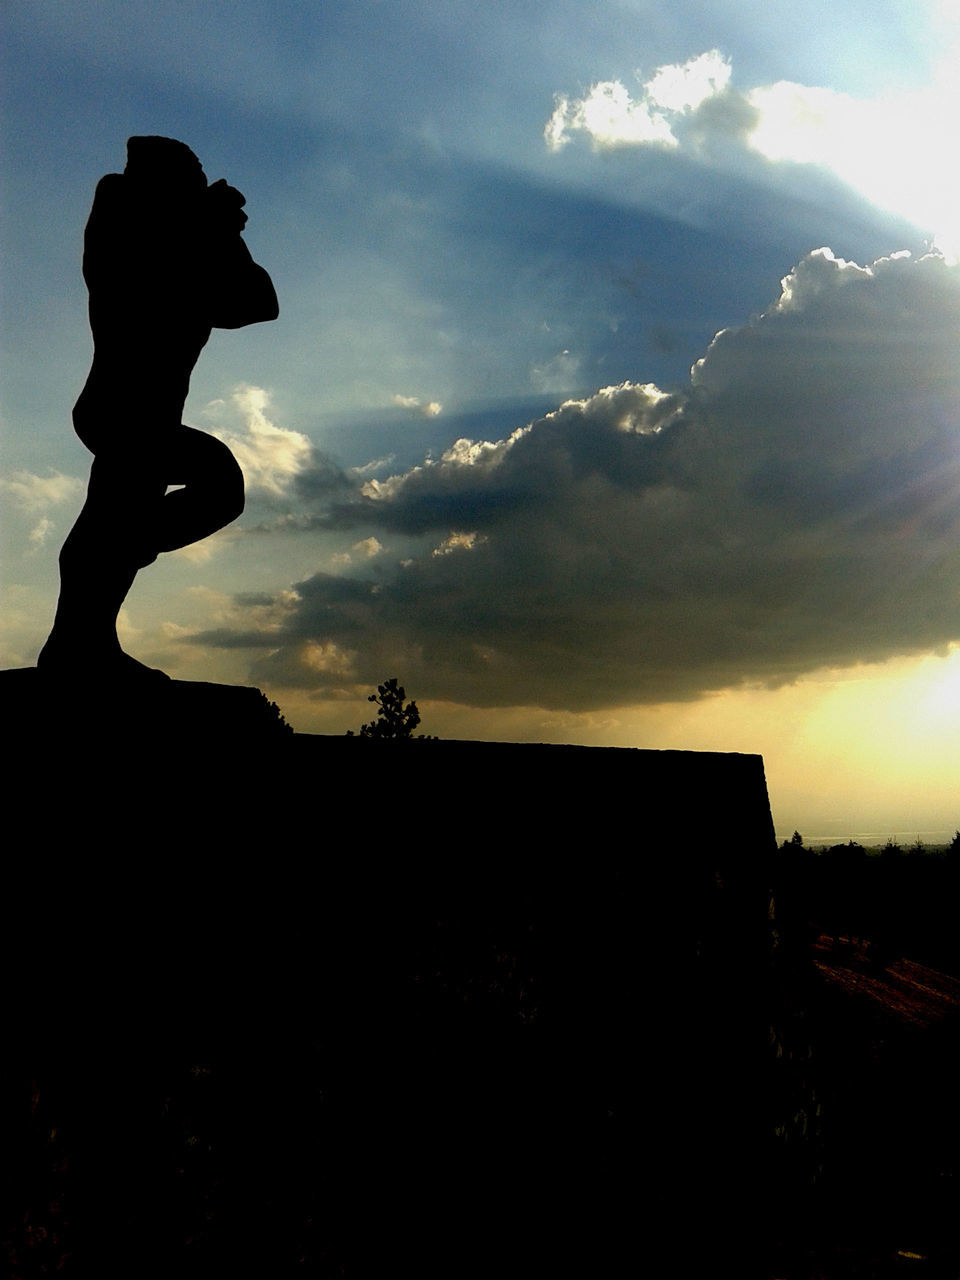 Low Angle View Of Silhouette Sculpture Against Sky During Sunset